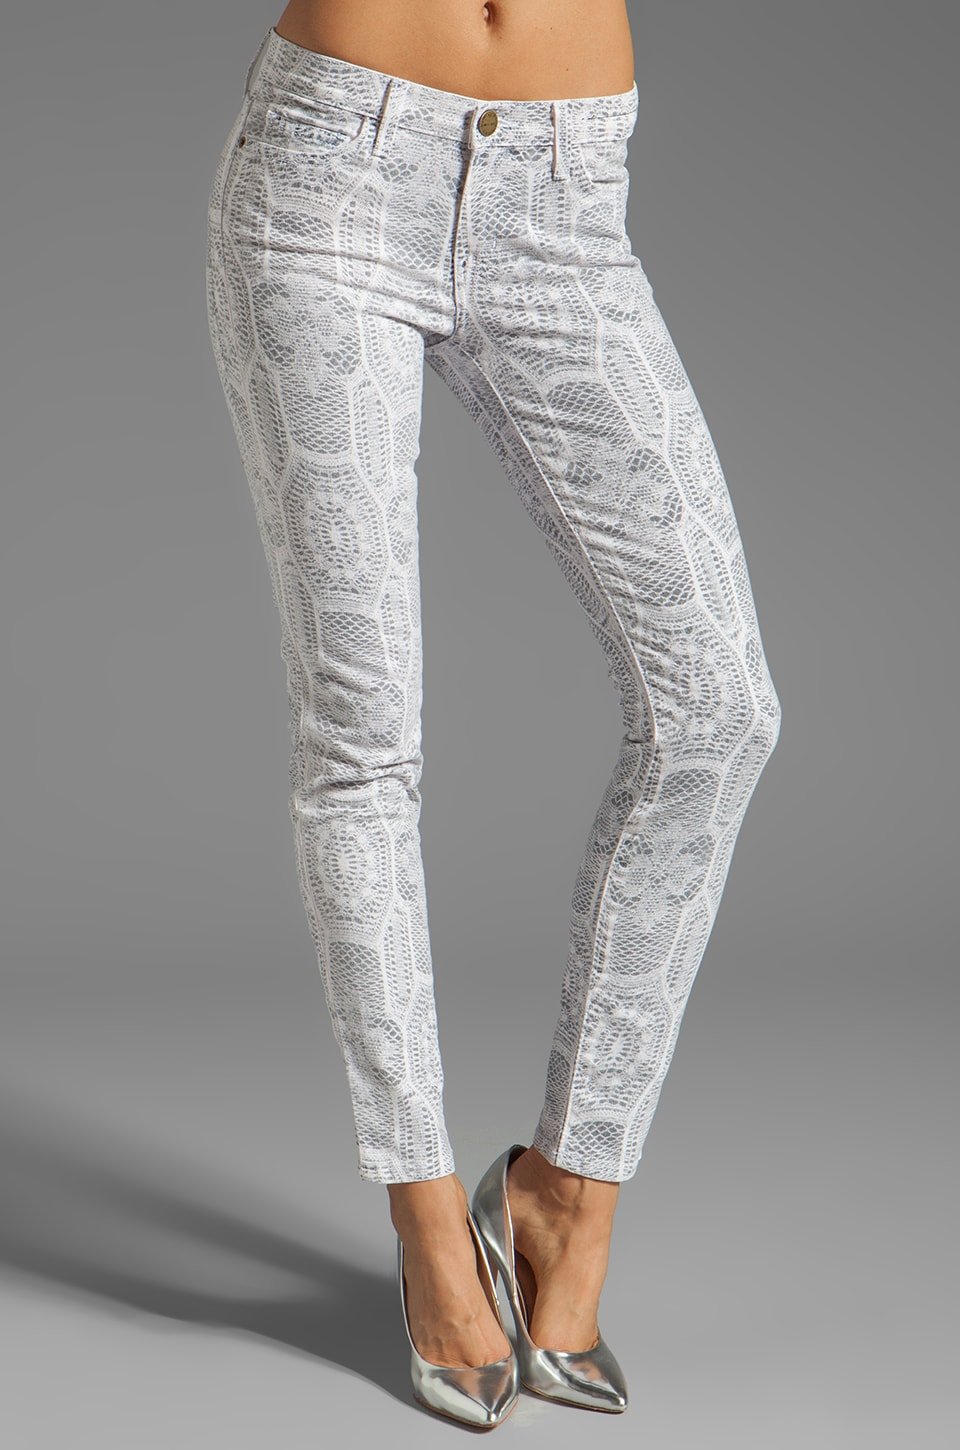 Current/Elliott The Ankle Skinny en Crochet